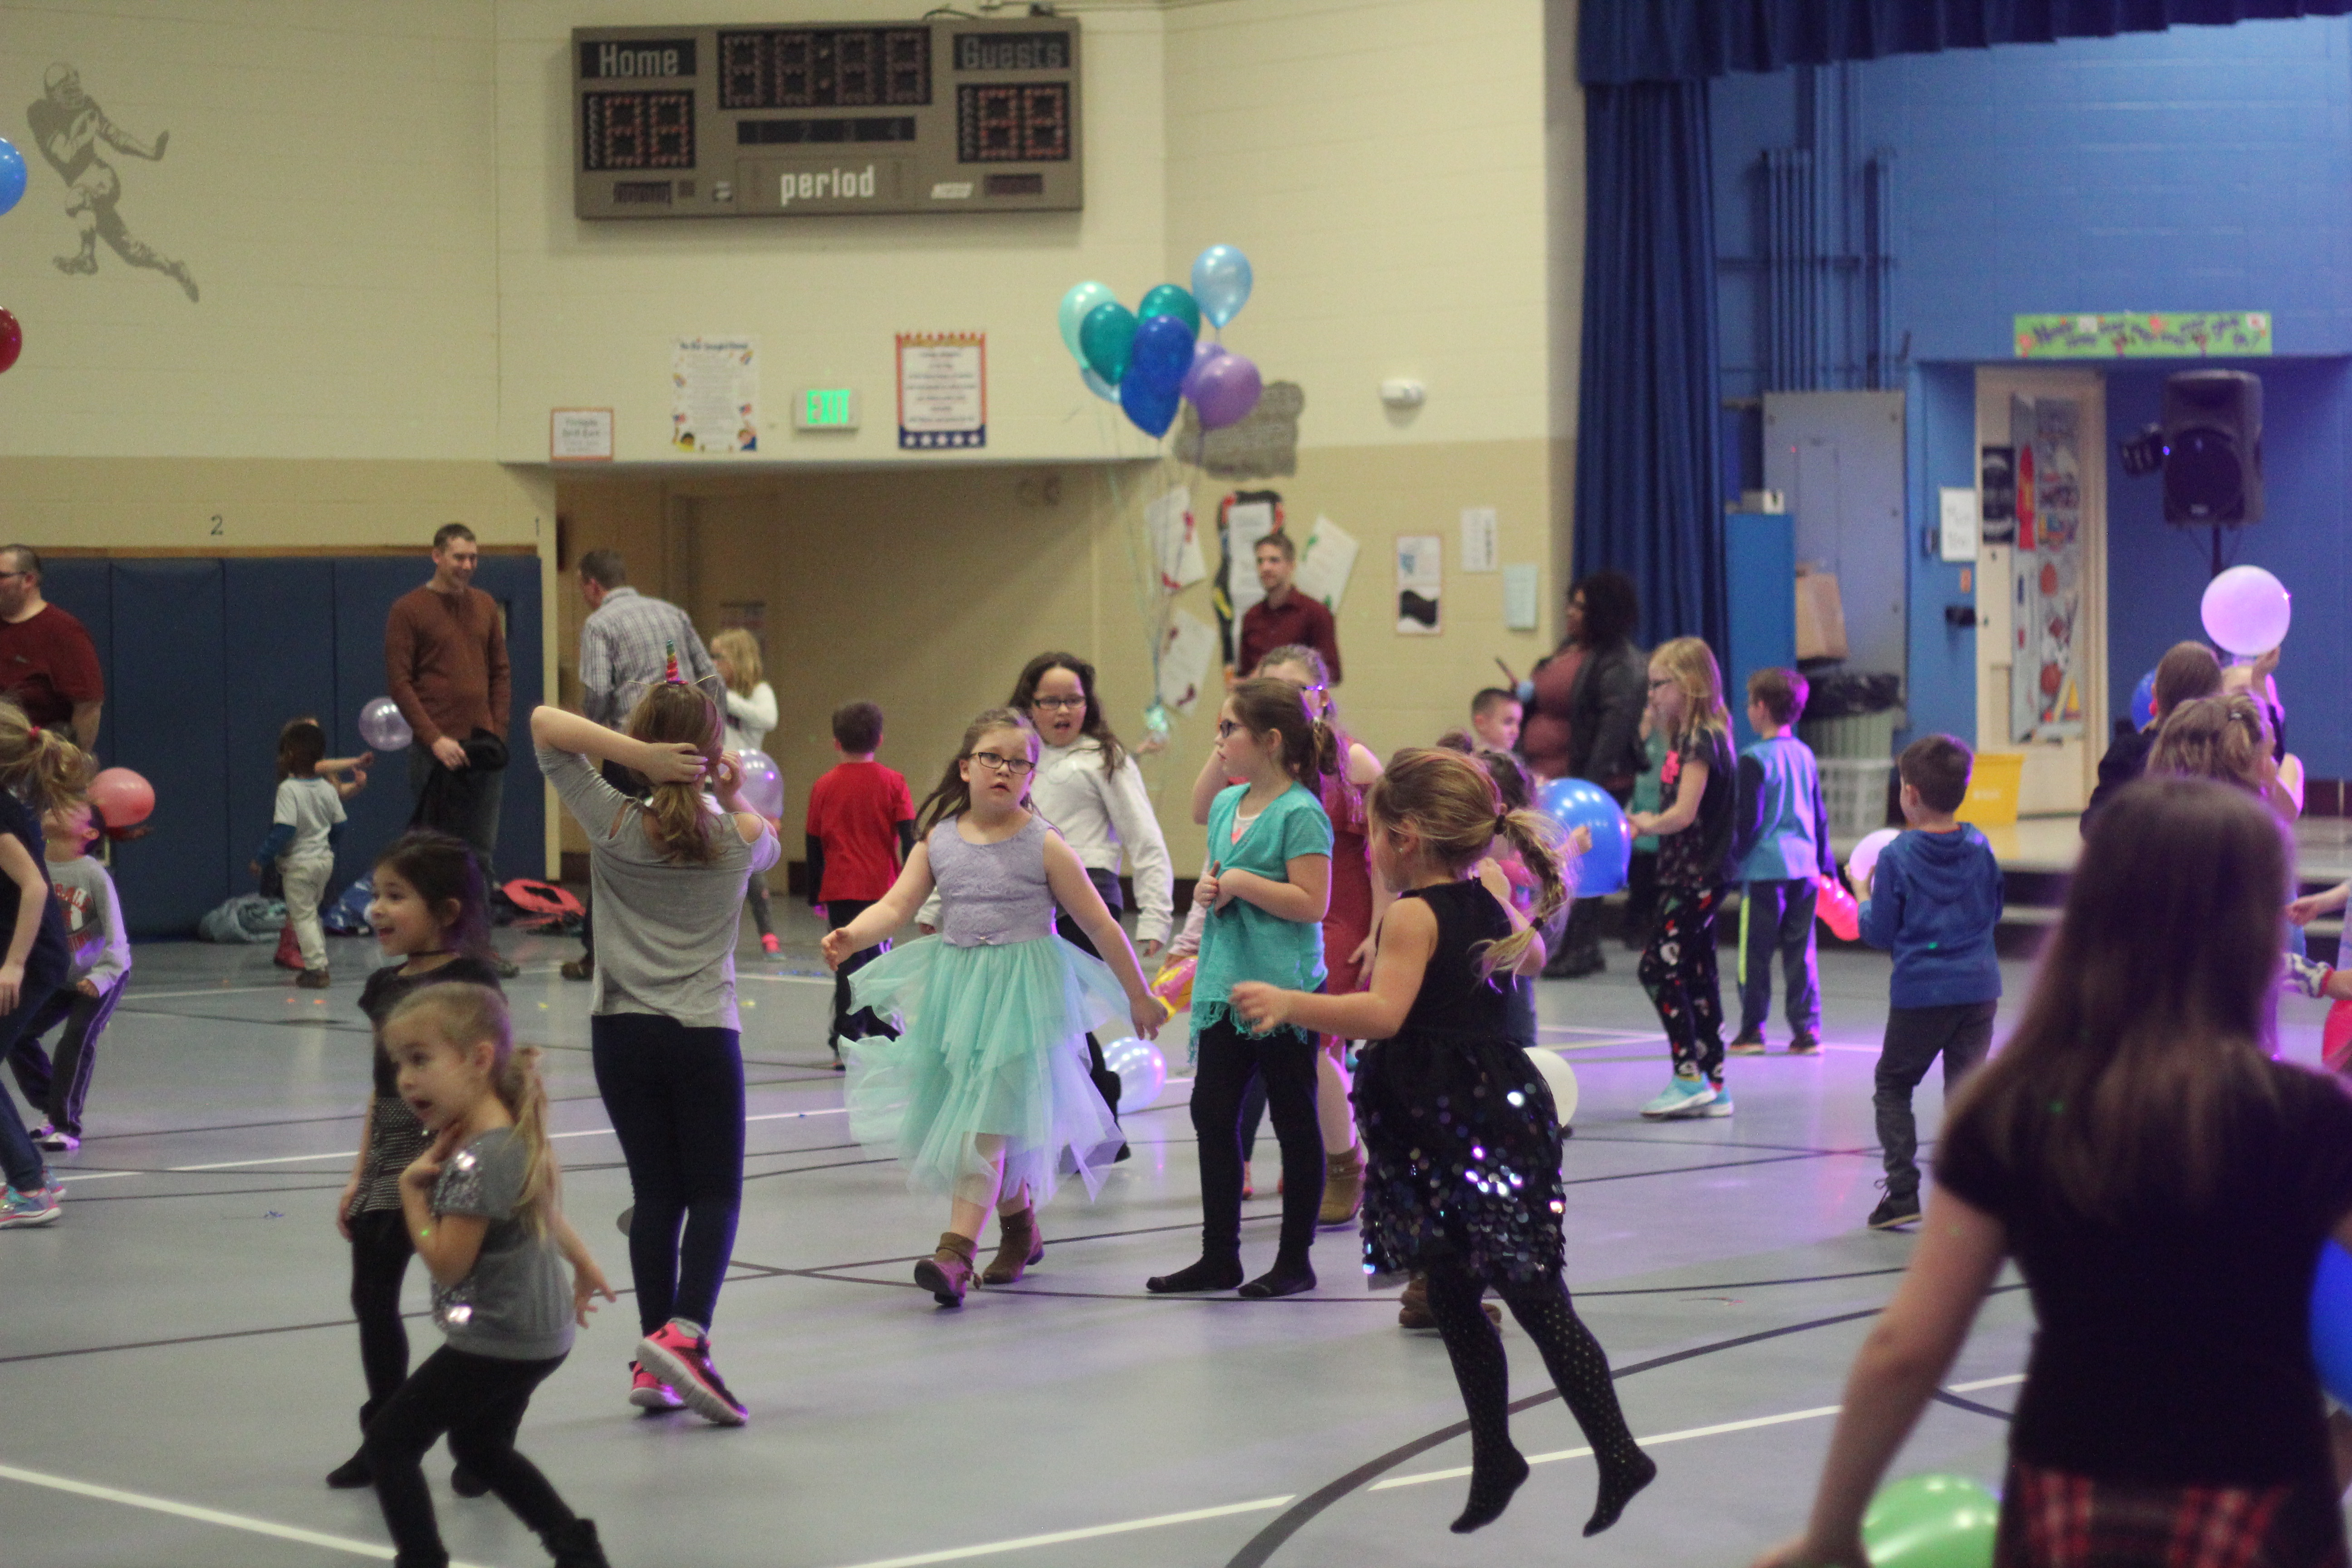 Students dance to music.